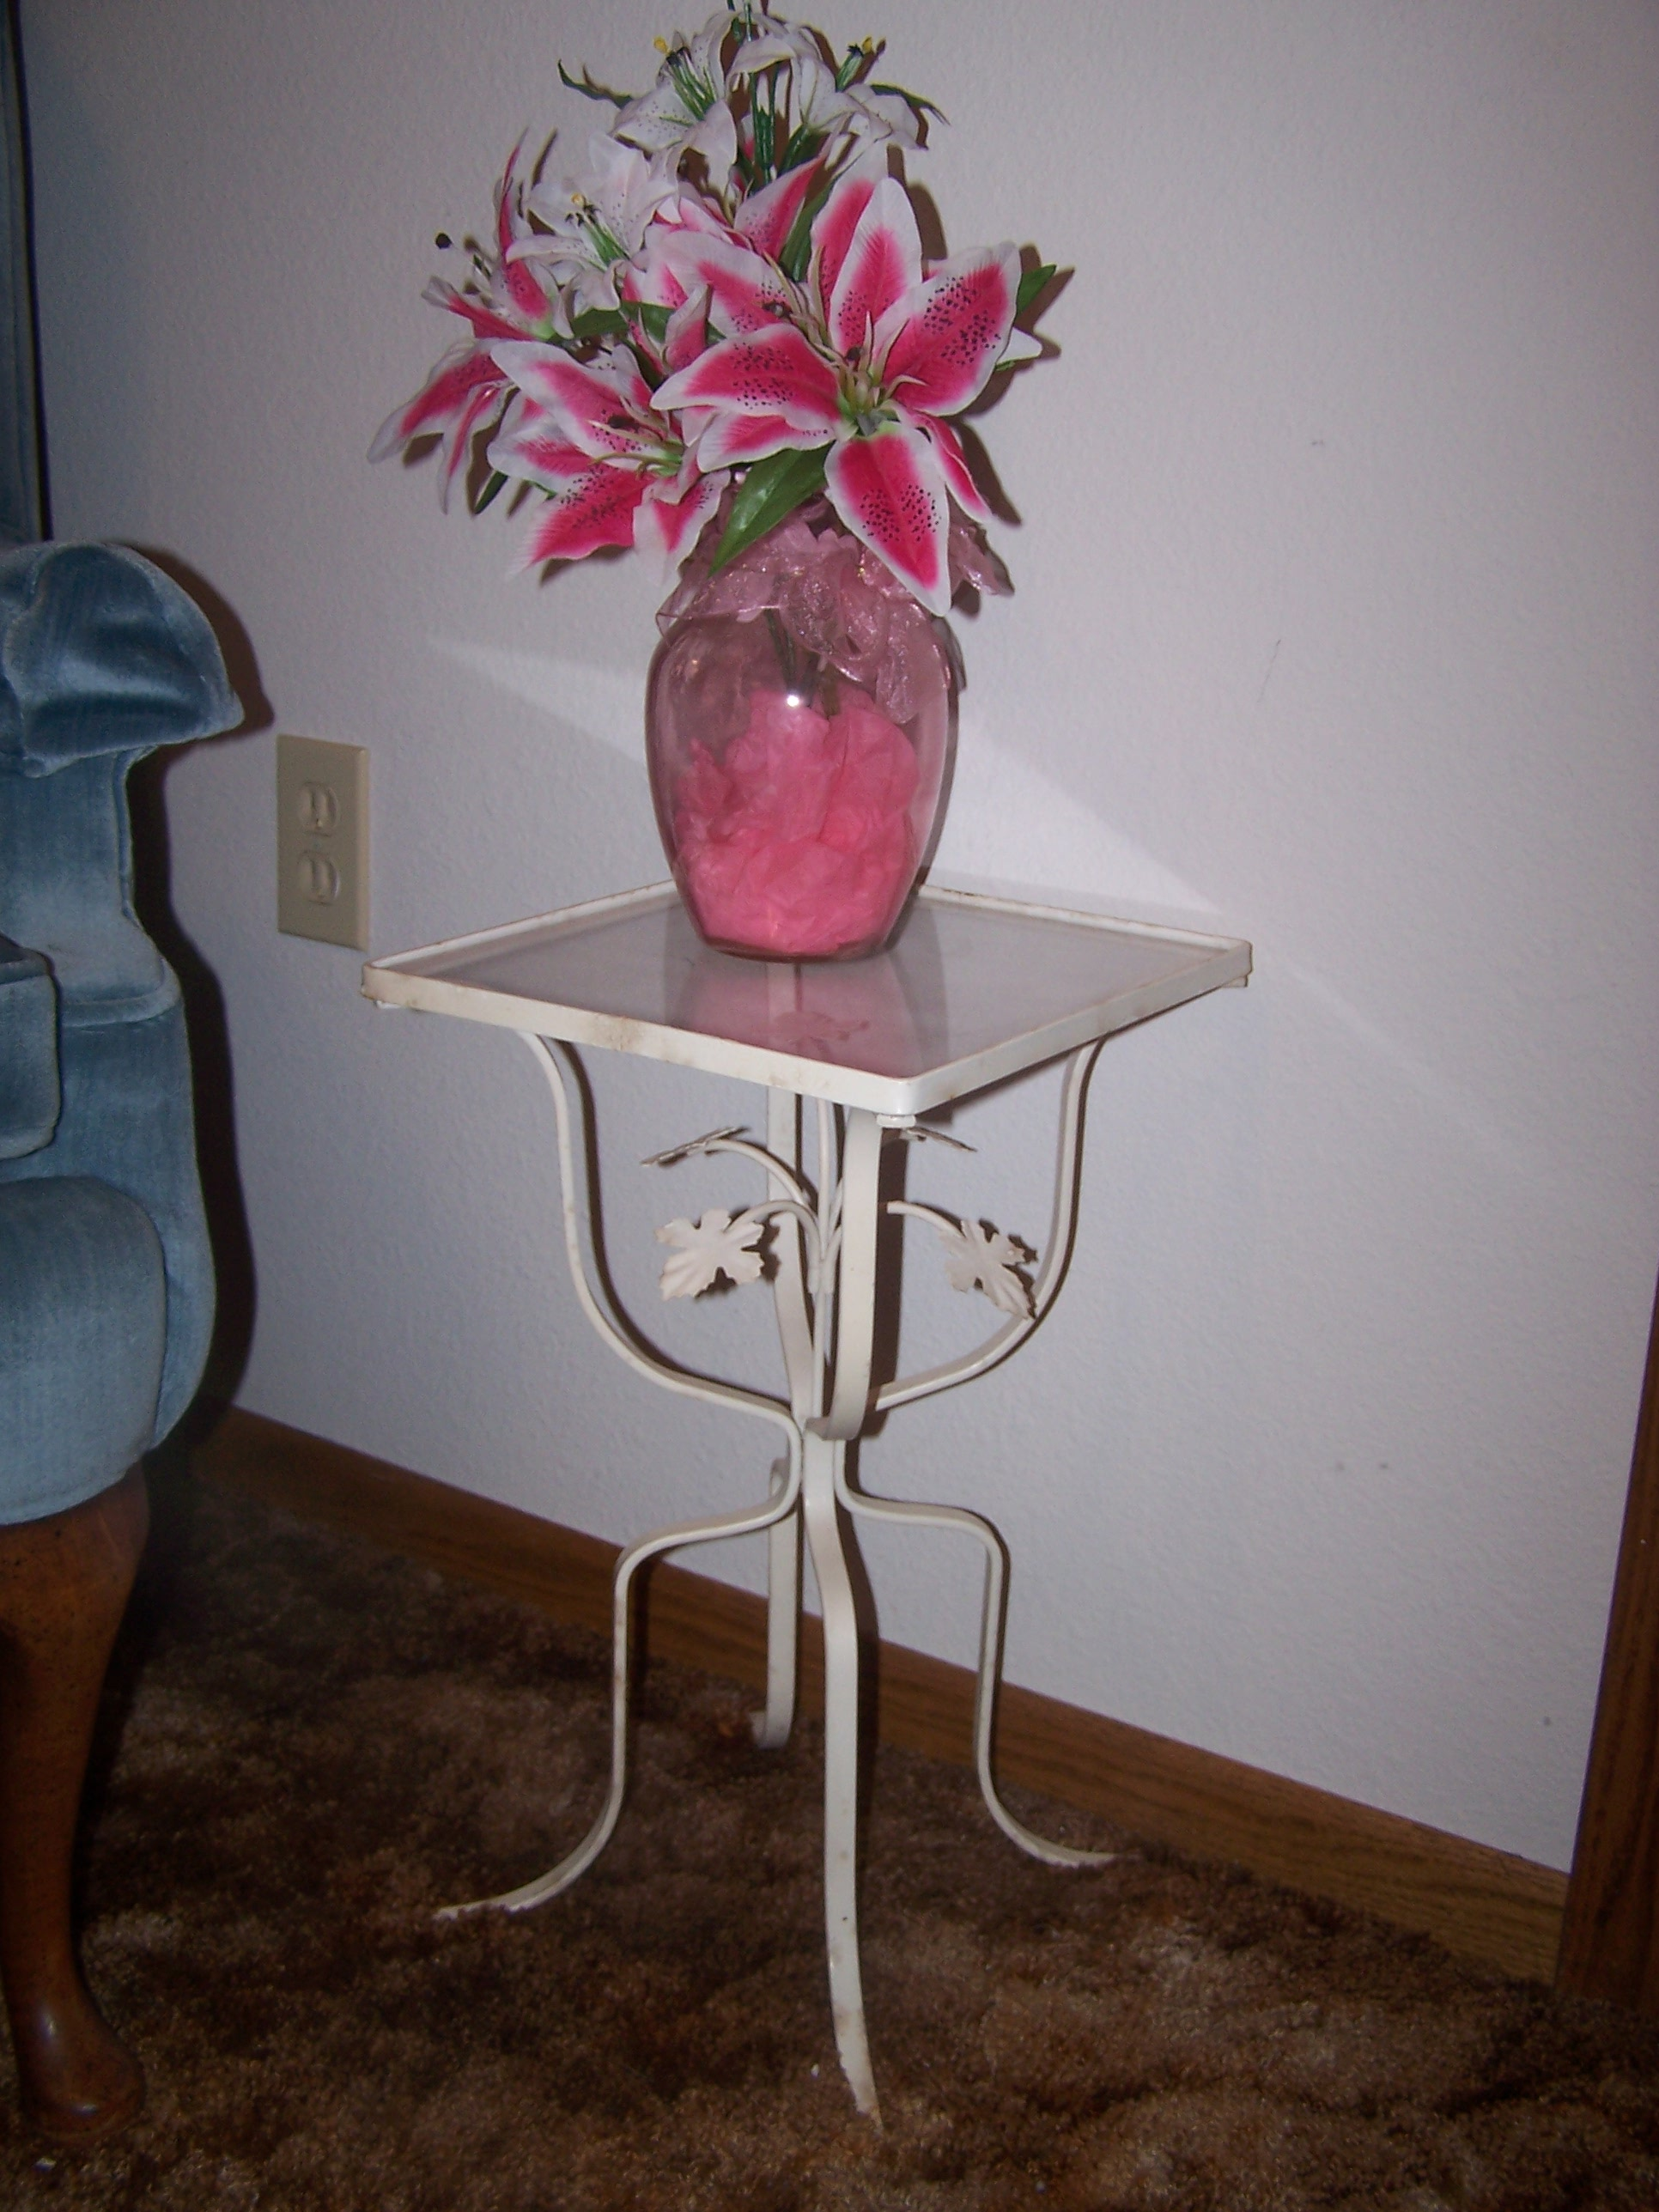 One of two old plant stands used as bedside tables in our guest room.